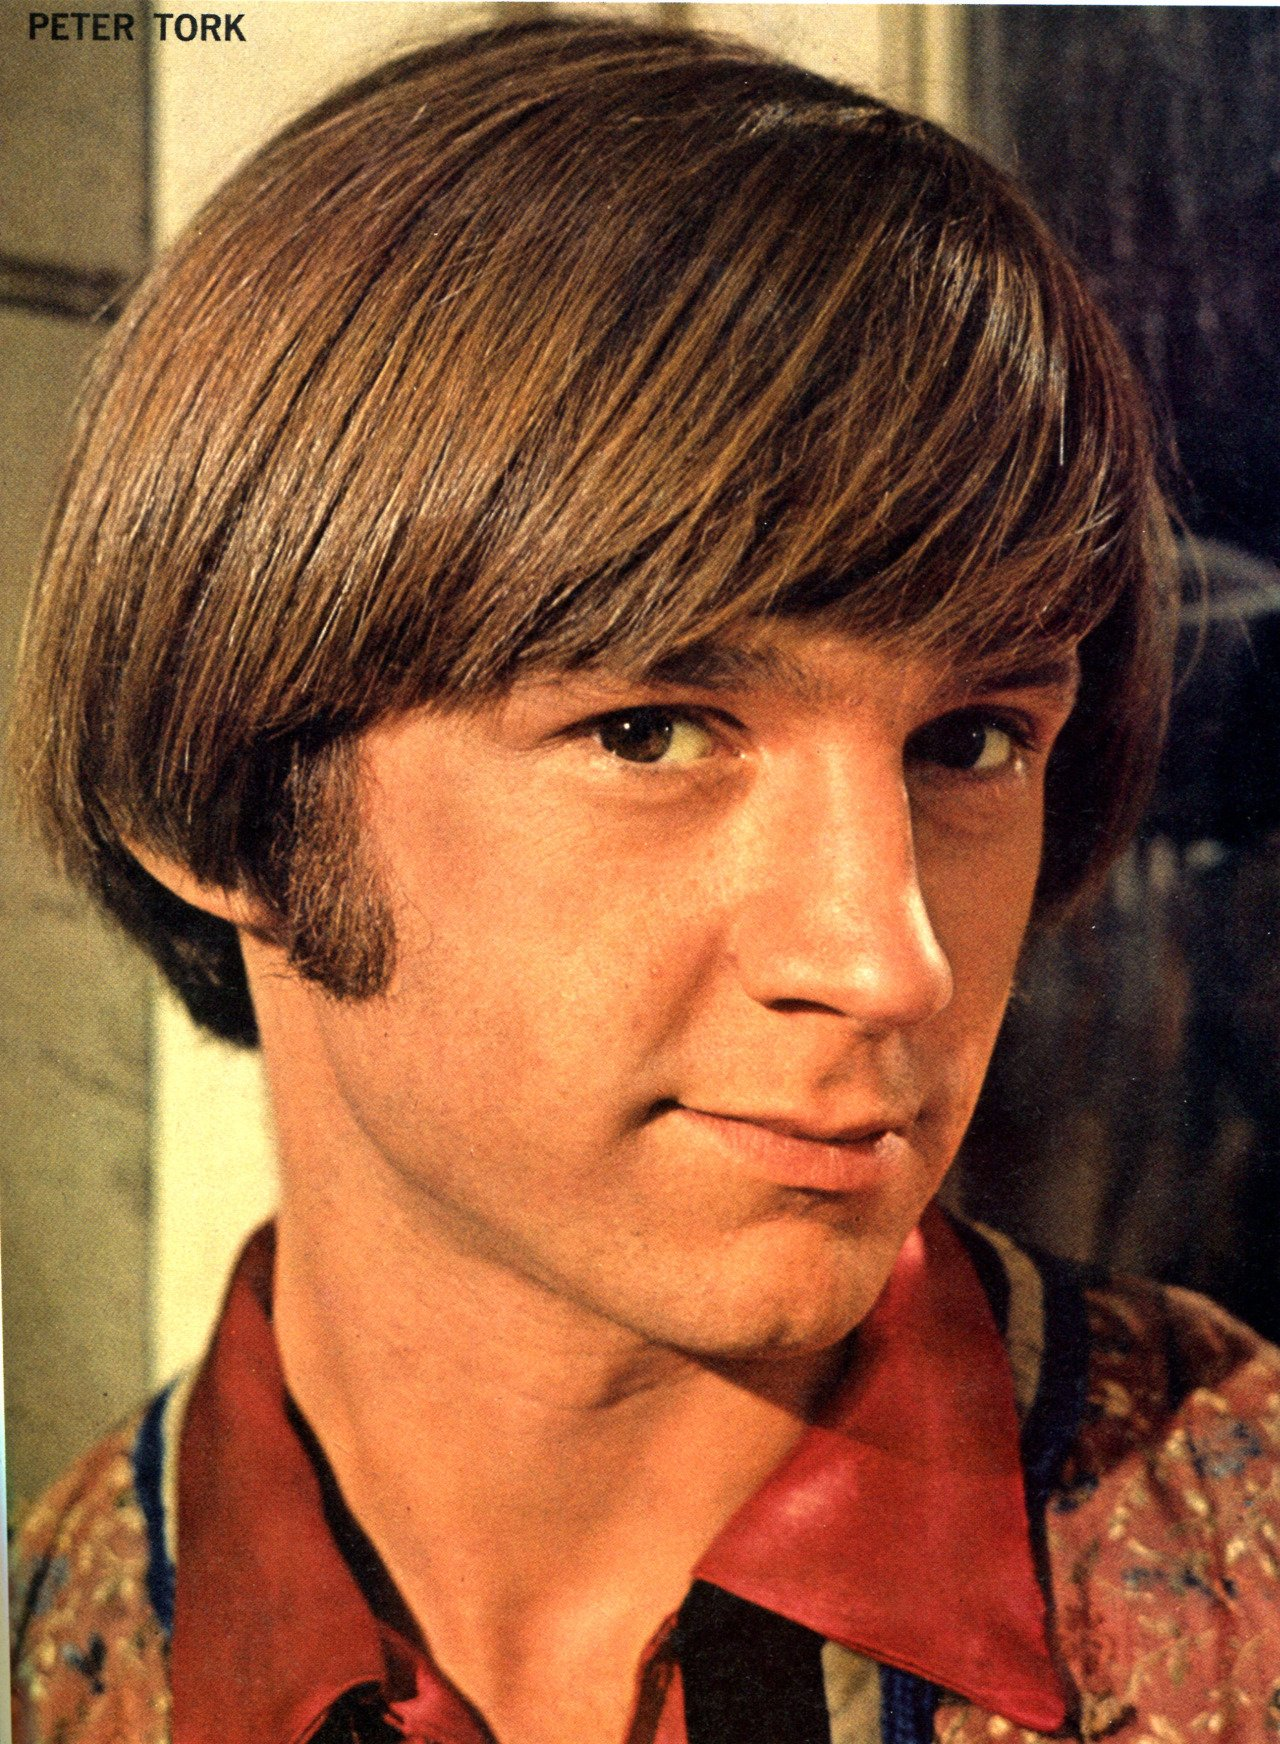 Happy Birthday to Peter Tork of